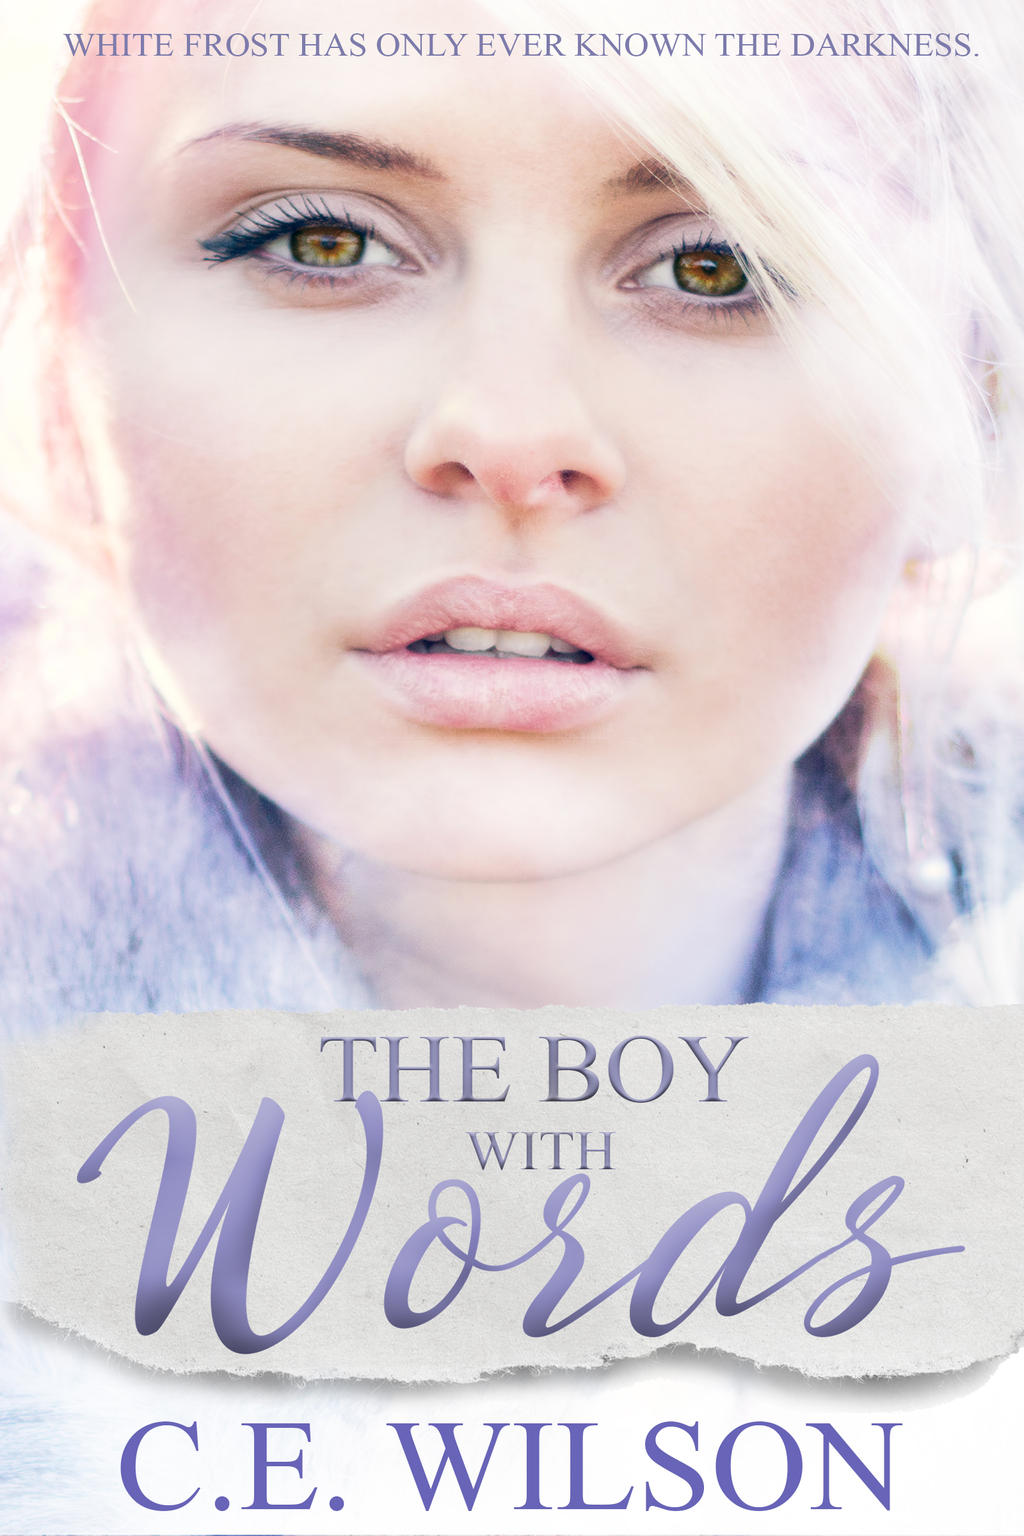 Get your free ecopy of The Boy with Words by cewilson5